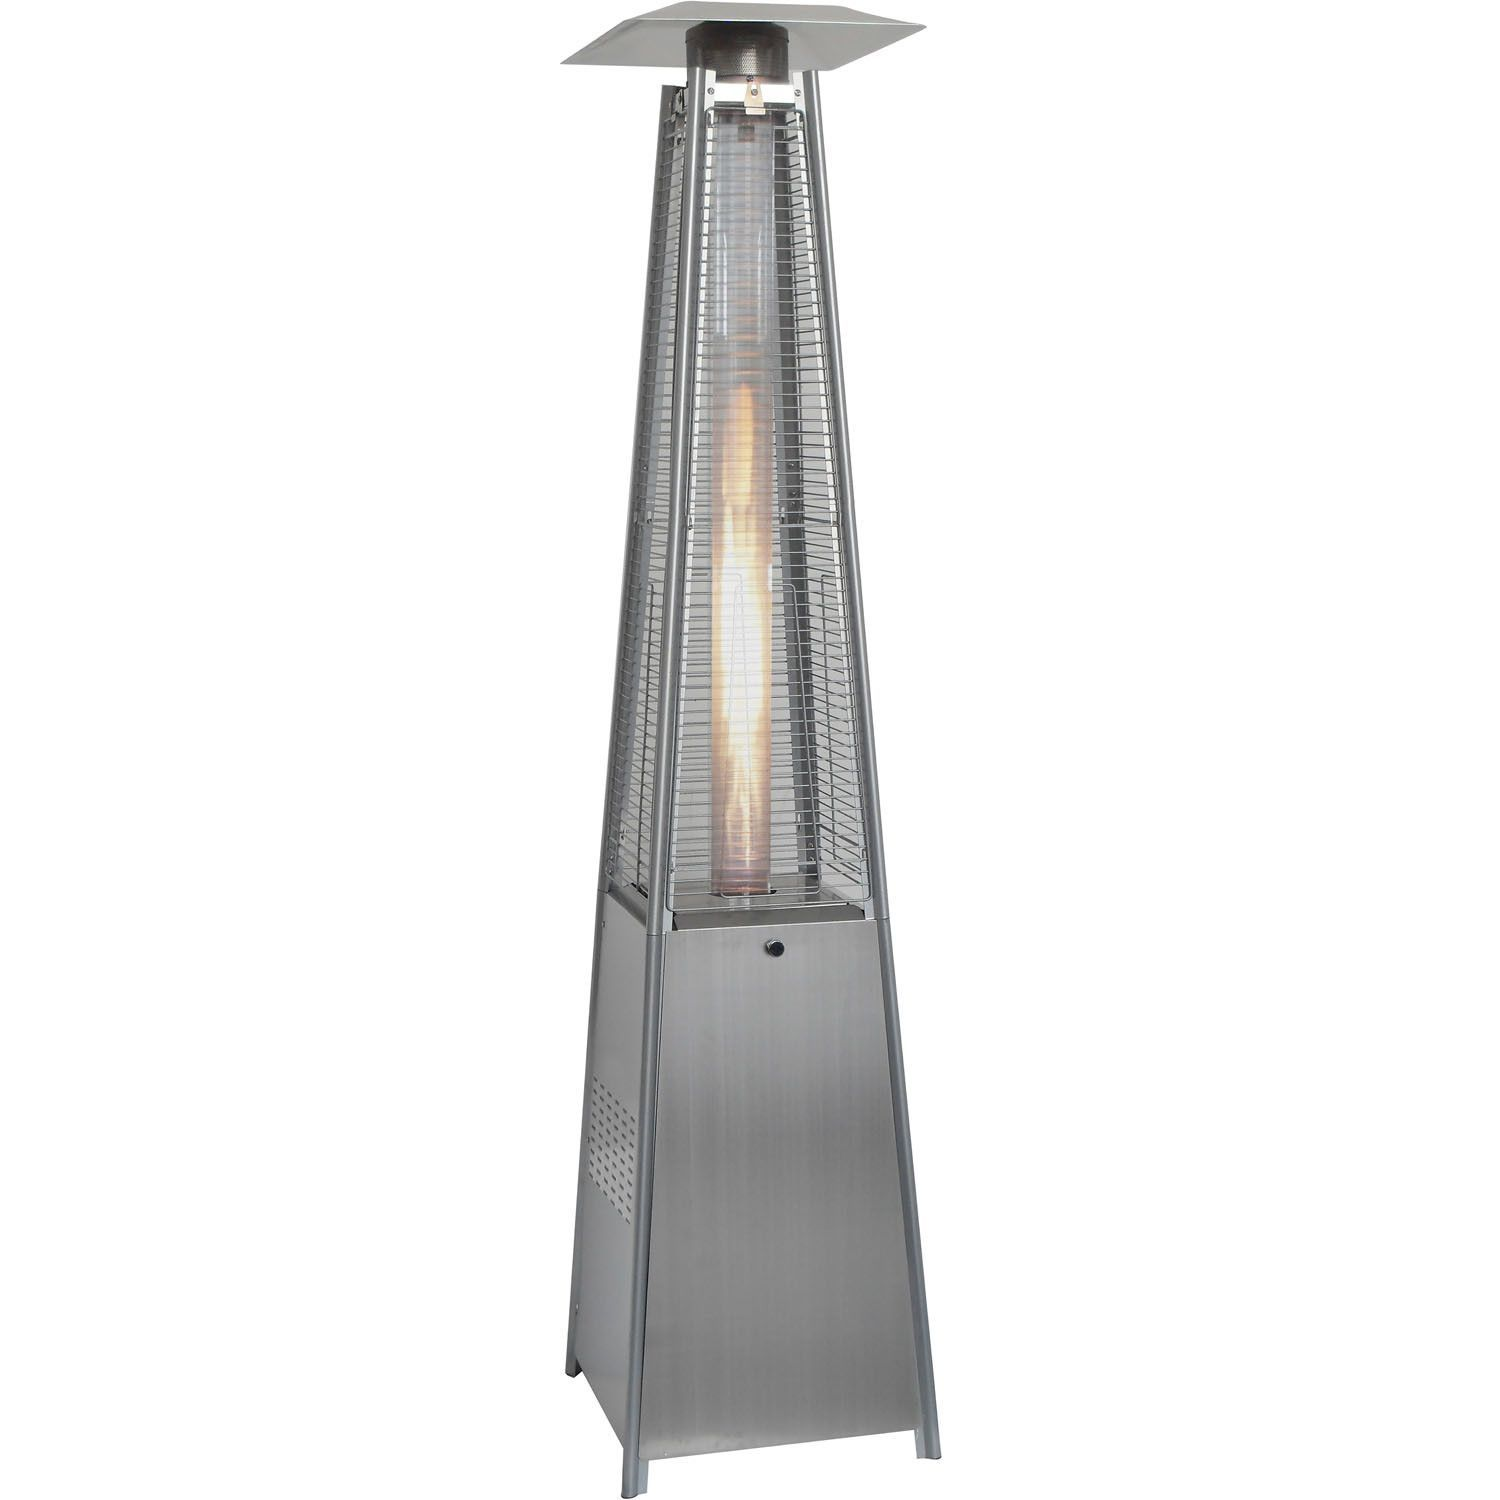 Pyramid Propane Patio Heater Propane Pinterest